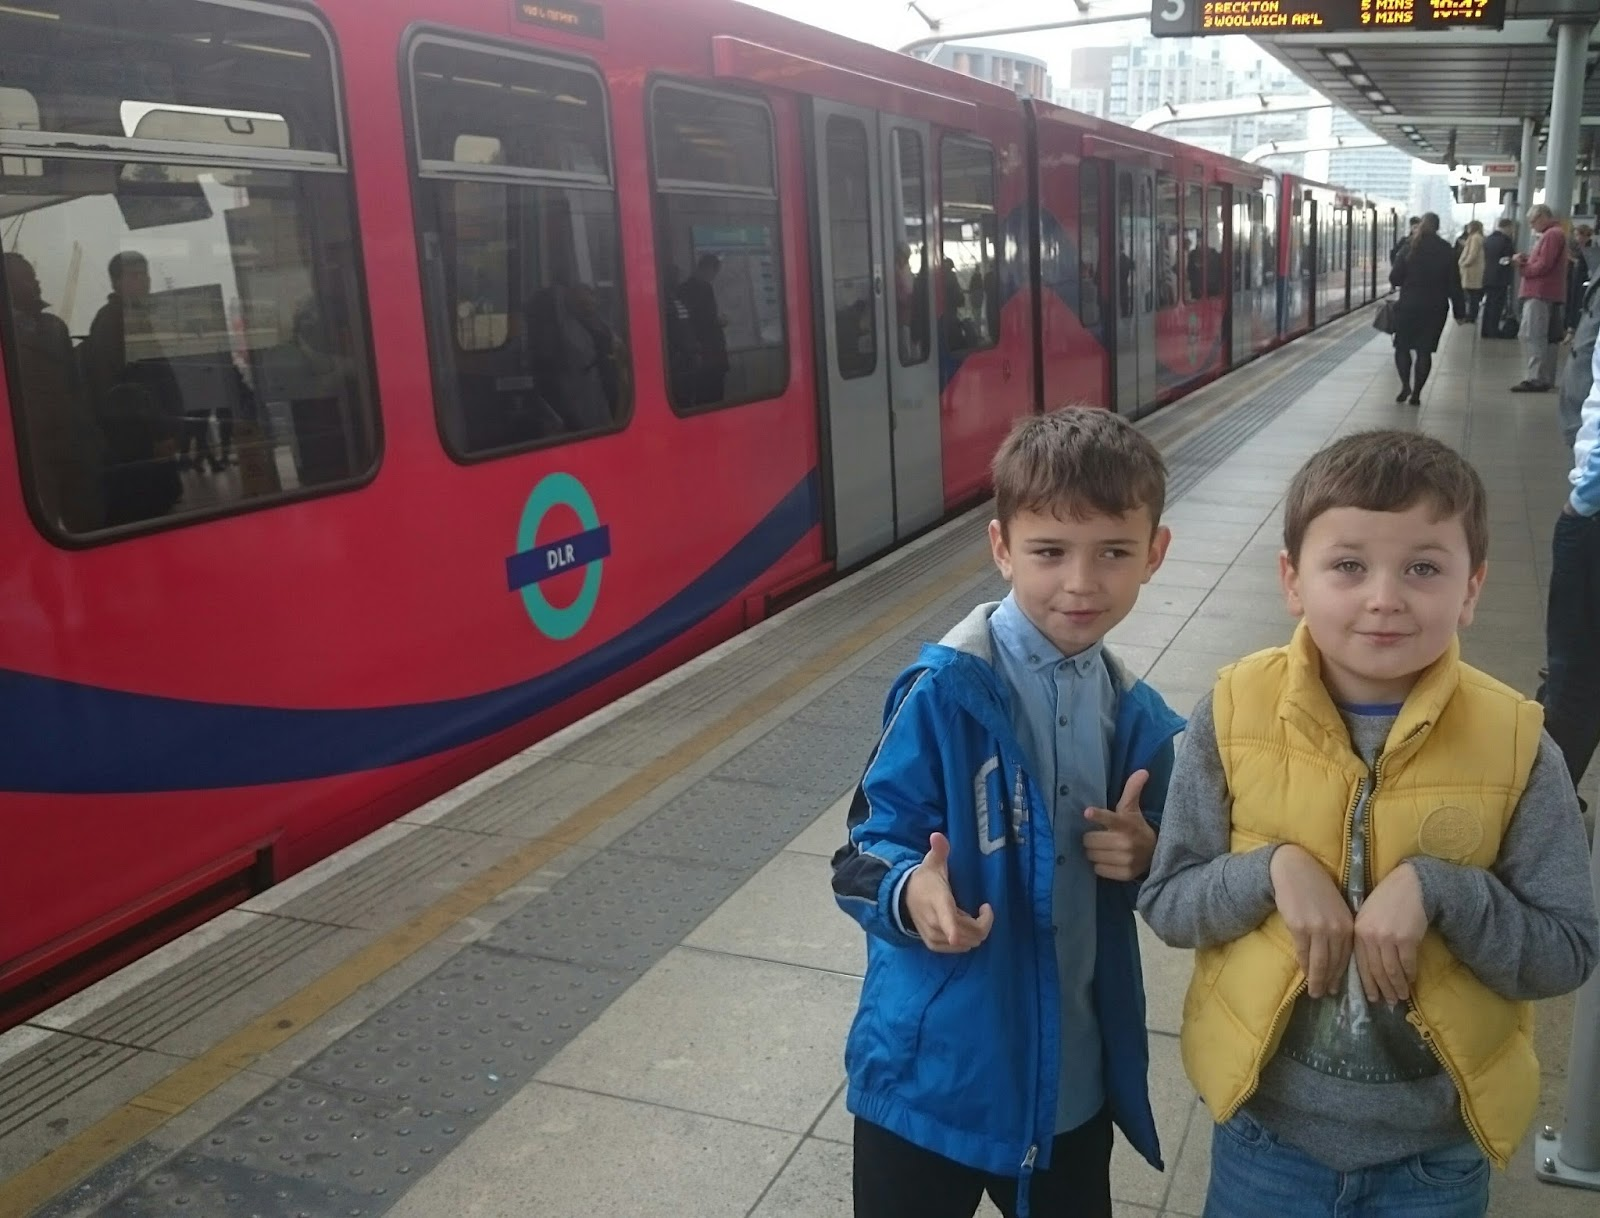 As a family i take my sons with me everywhere on public transport they are well travelled tubers and enjoy adventure people watching and goofing on the